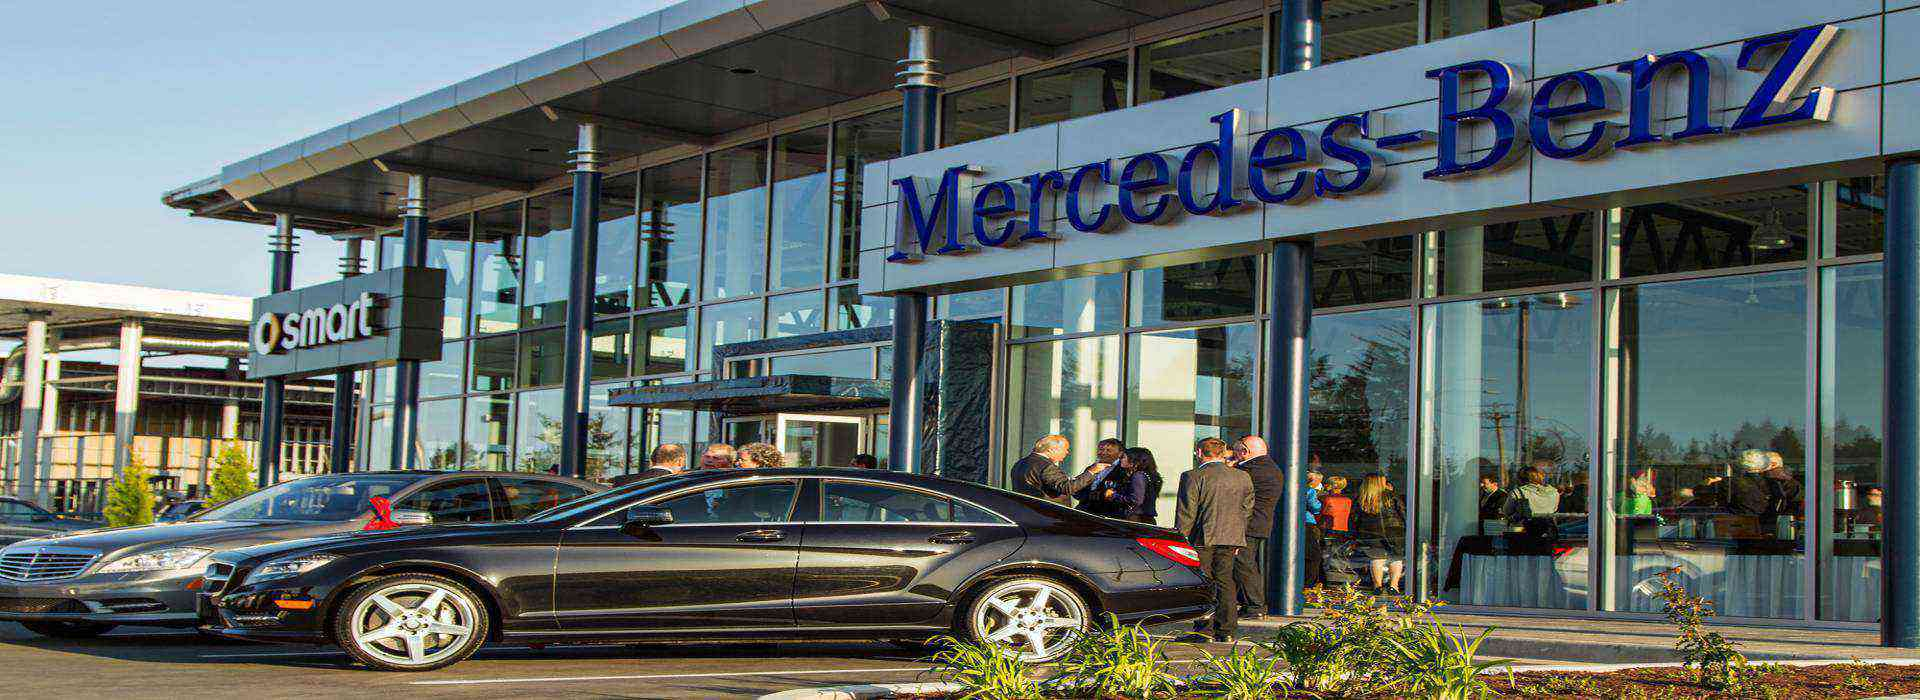 Mercedes benz indonesia customer care number address for Mercedes benz support number